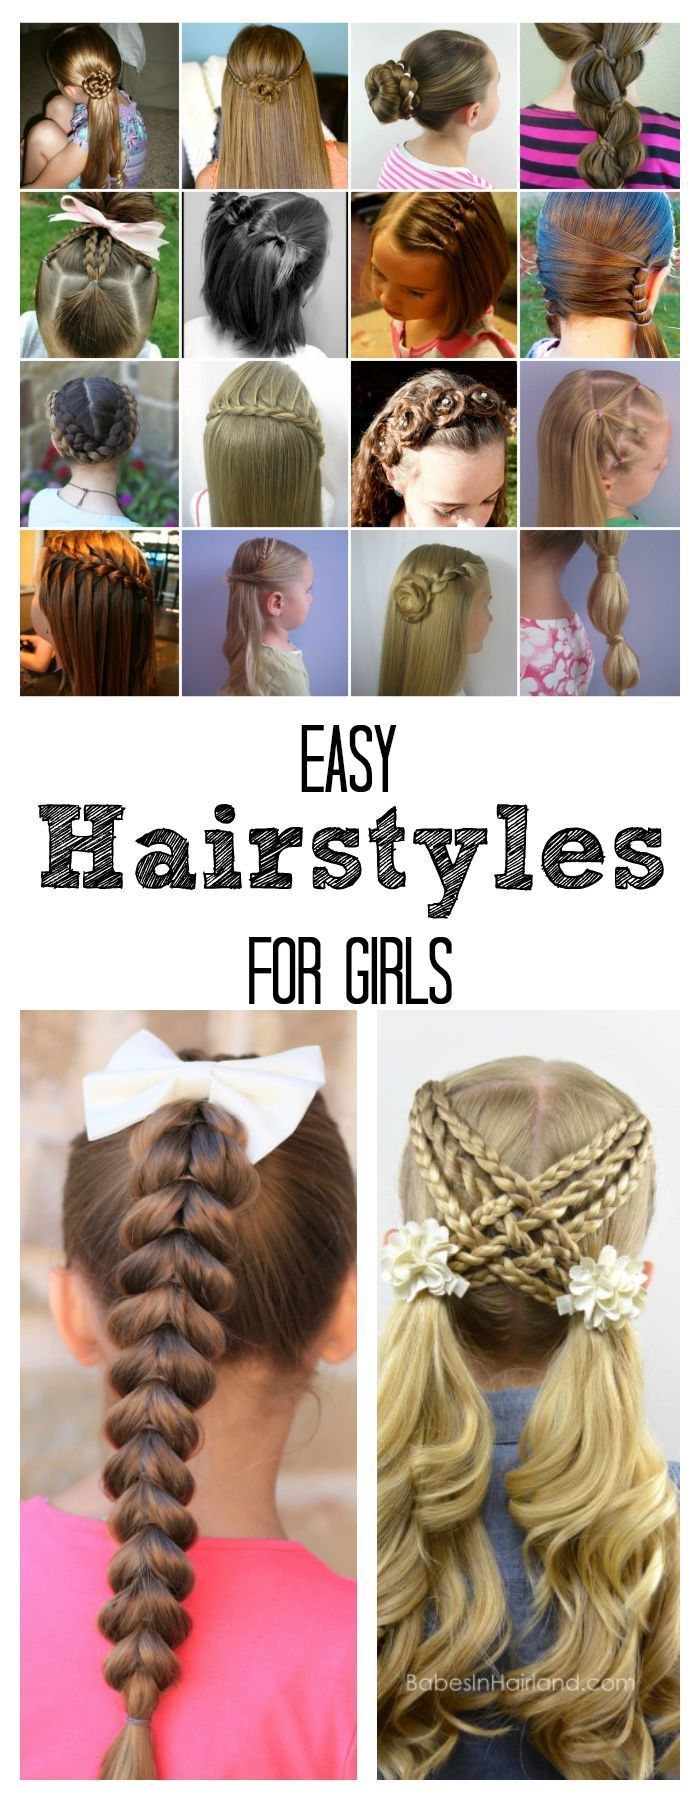 Pleasing 1000 Ideas About Easy Girl Hairstyles On Pinterest Hairstyles Hairstyles For Women Draintrainus